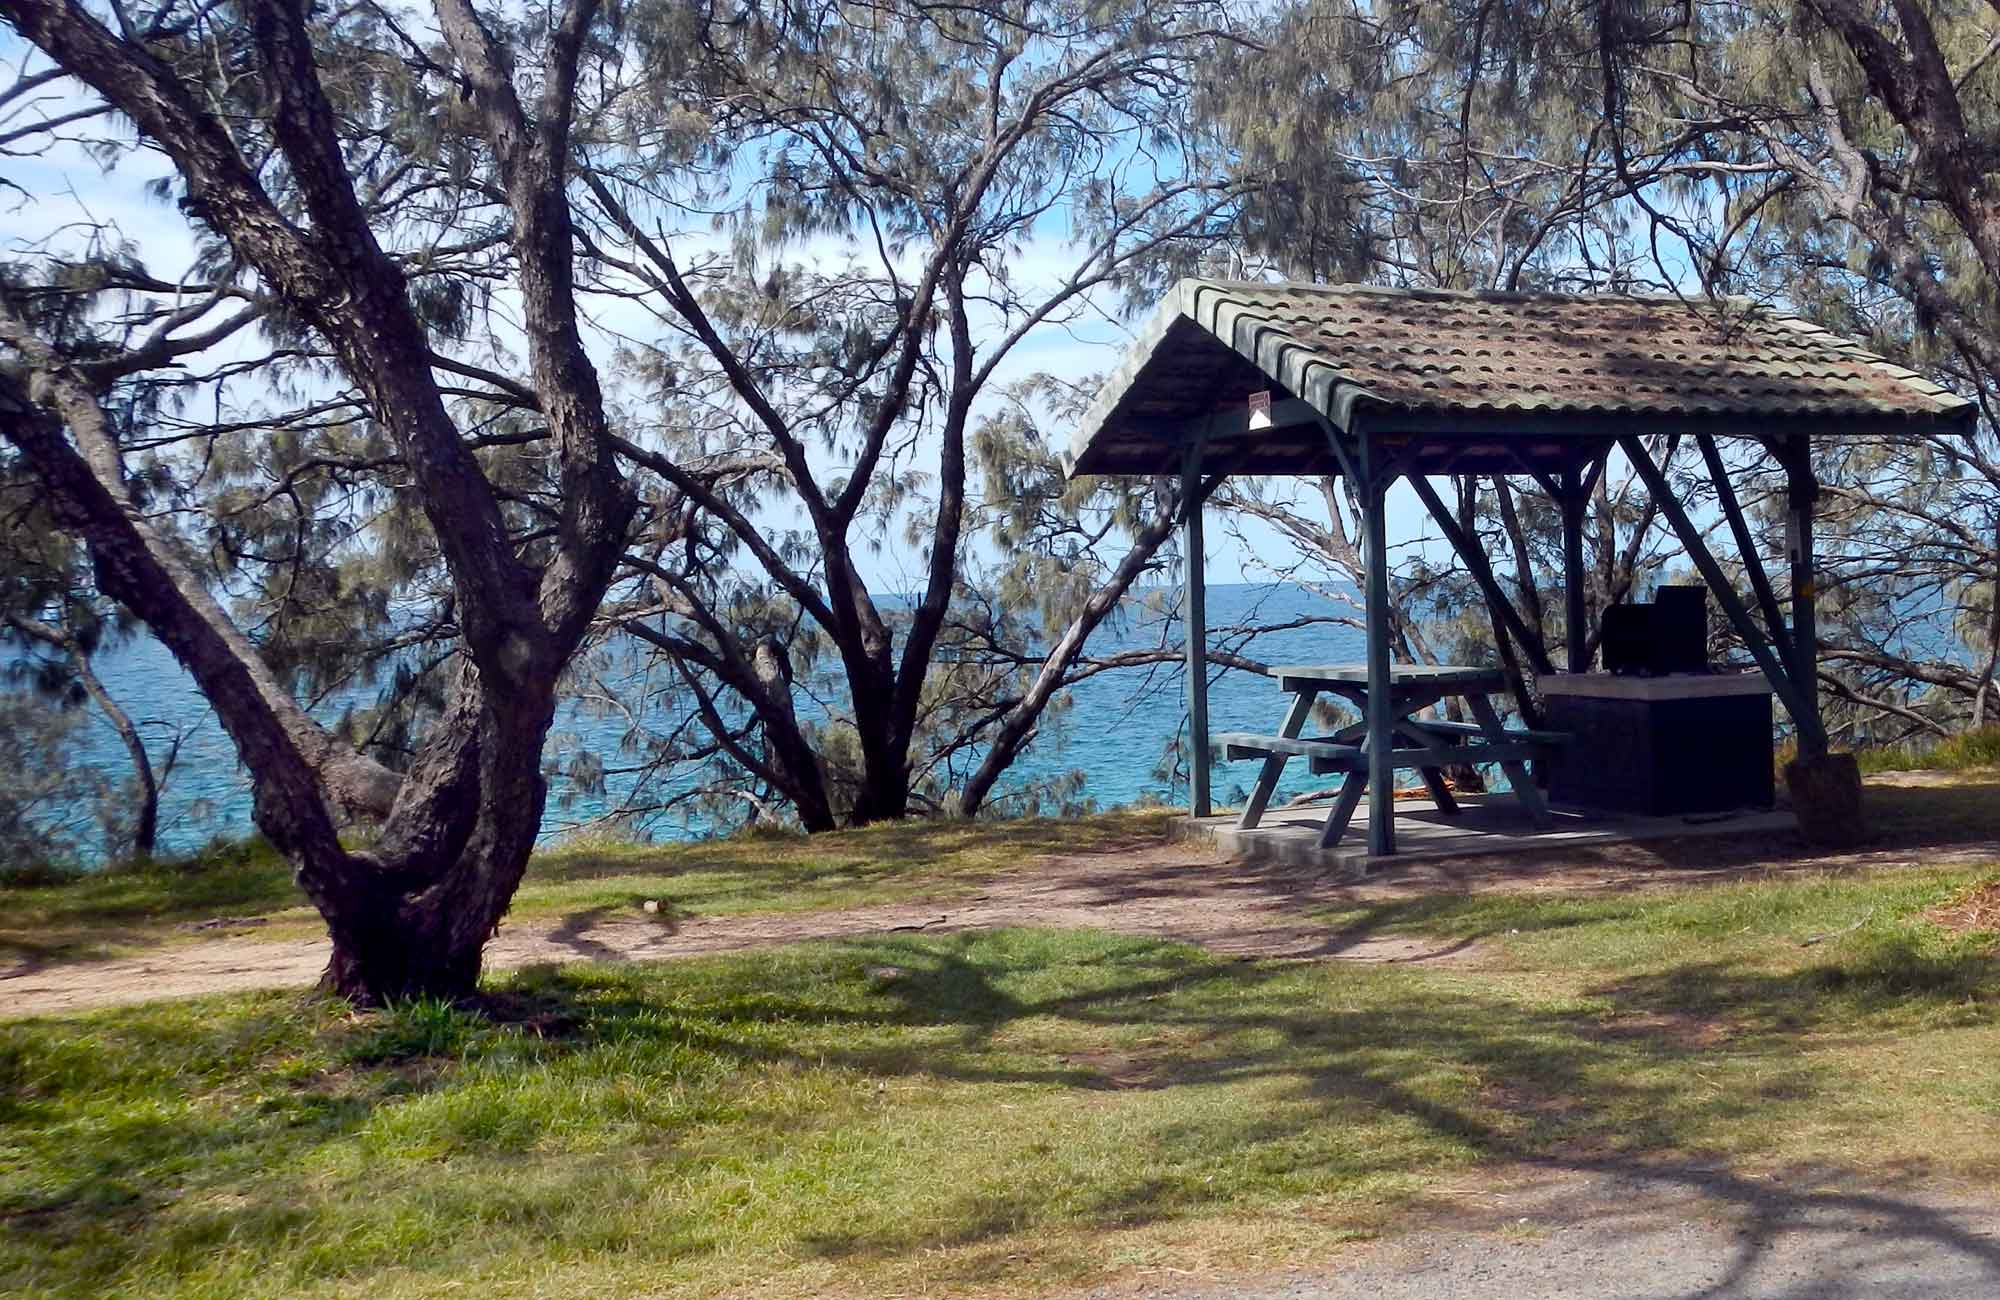 Little Bay picnic area, Arakoon National Park. Photo: Debby McGerty